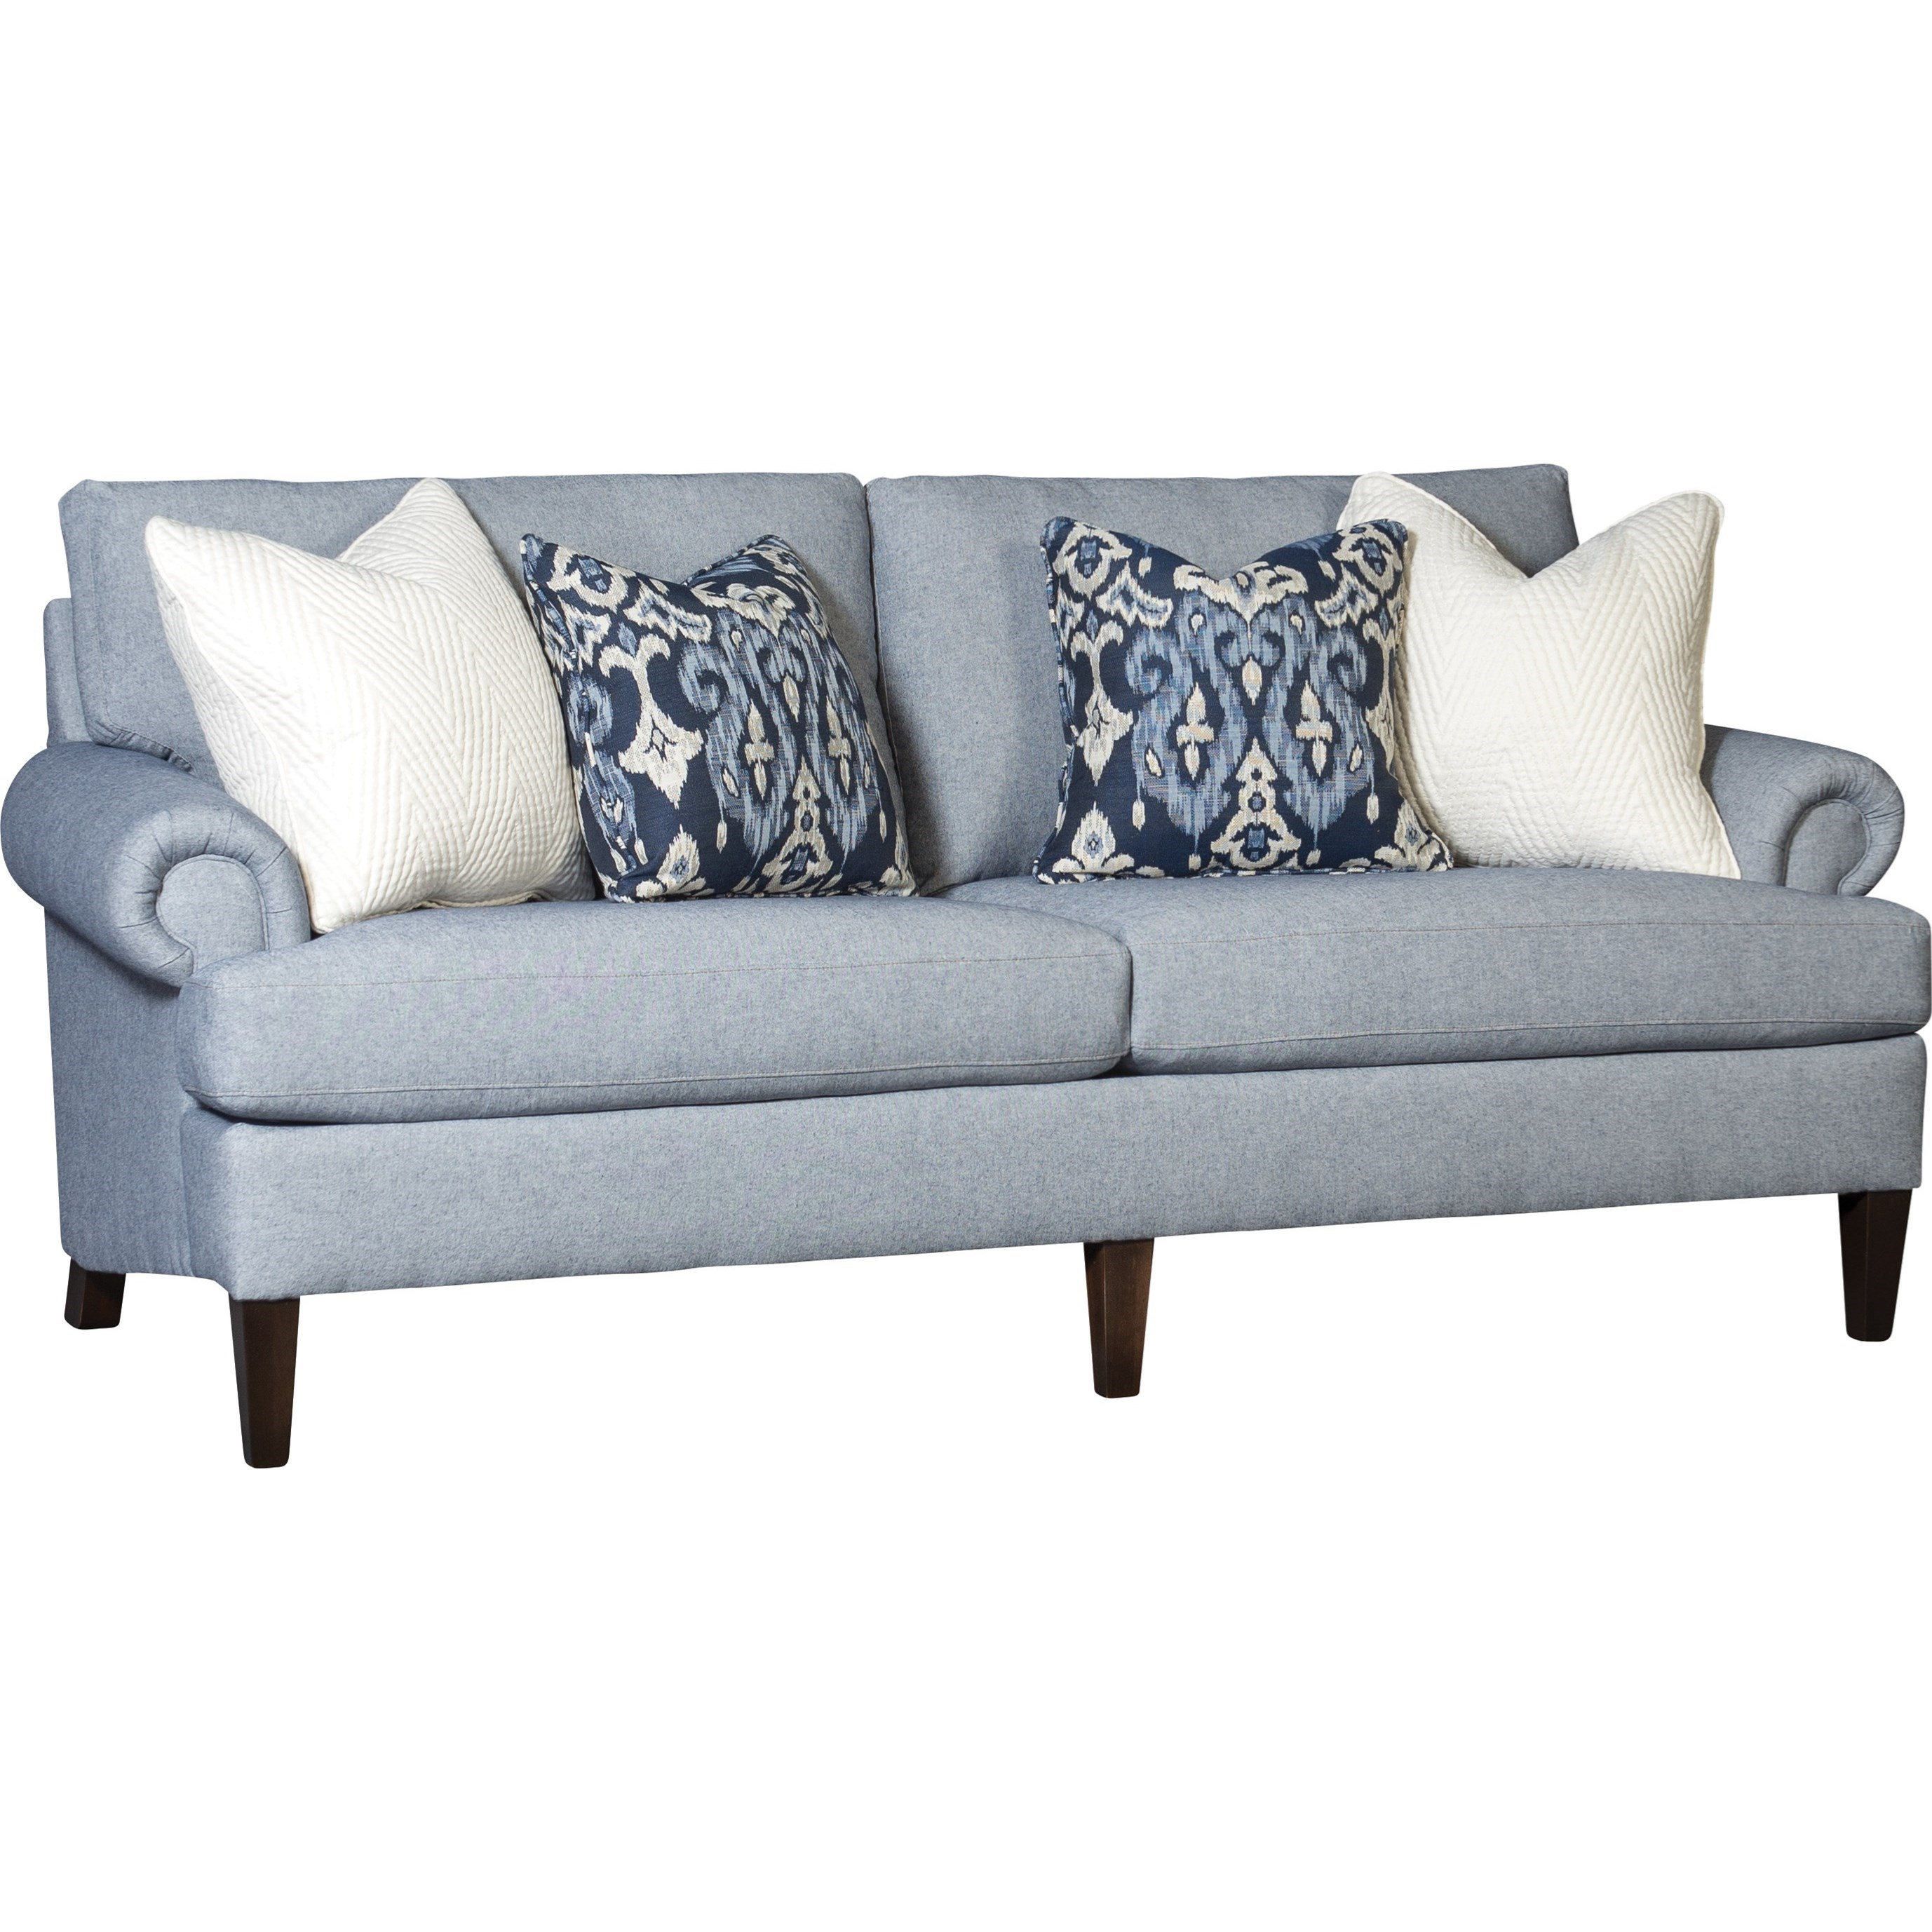 5070 Sofa by Mayo at Wilcox Furniture